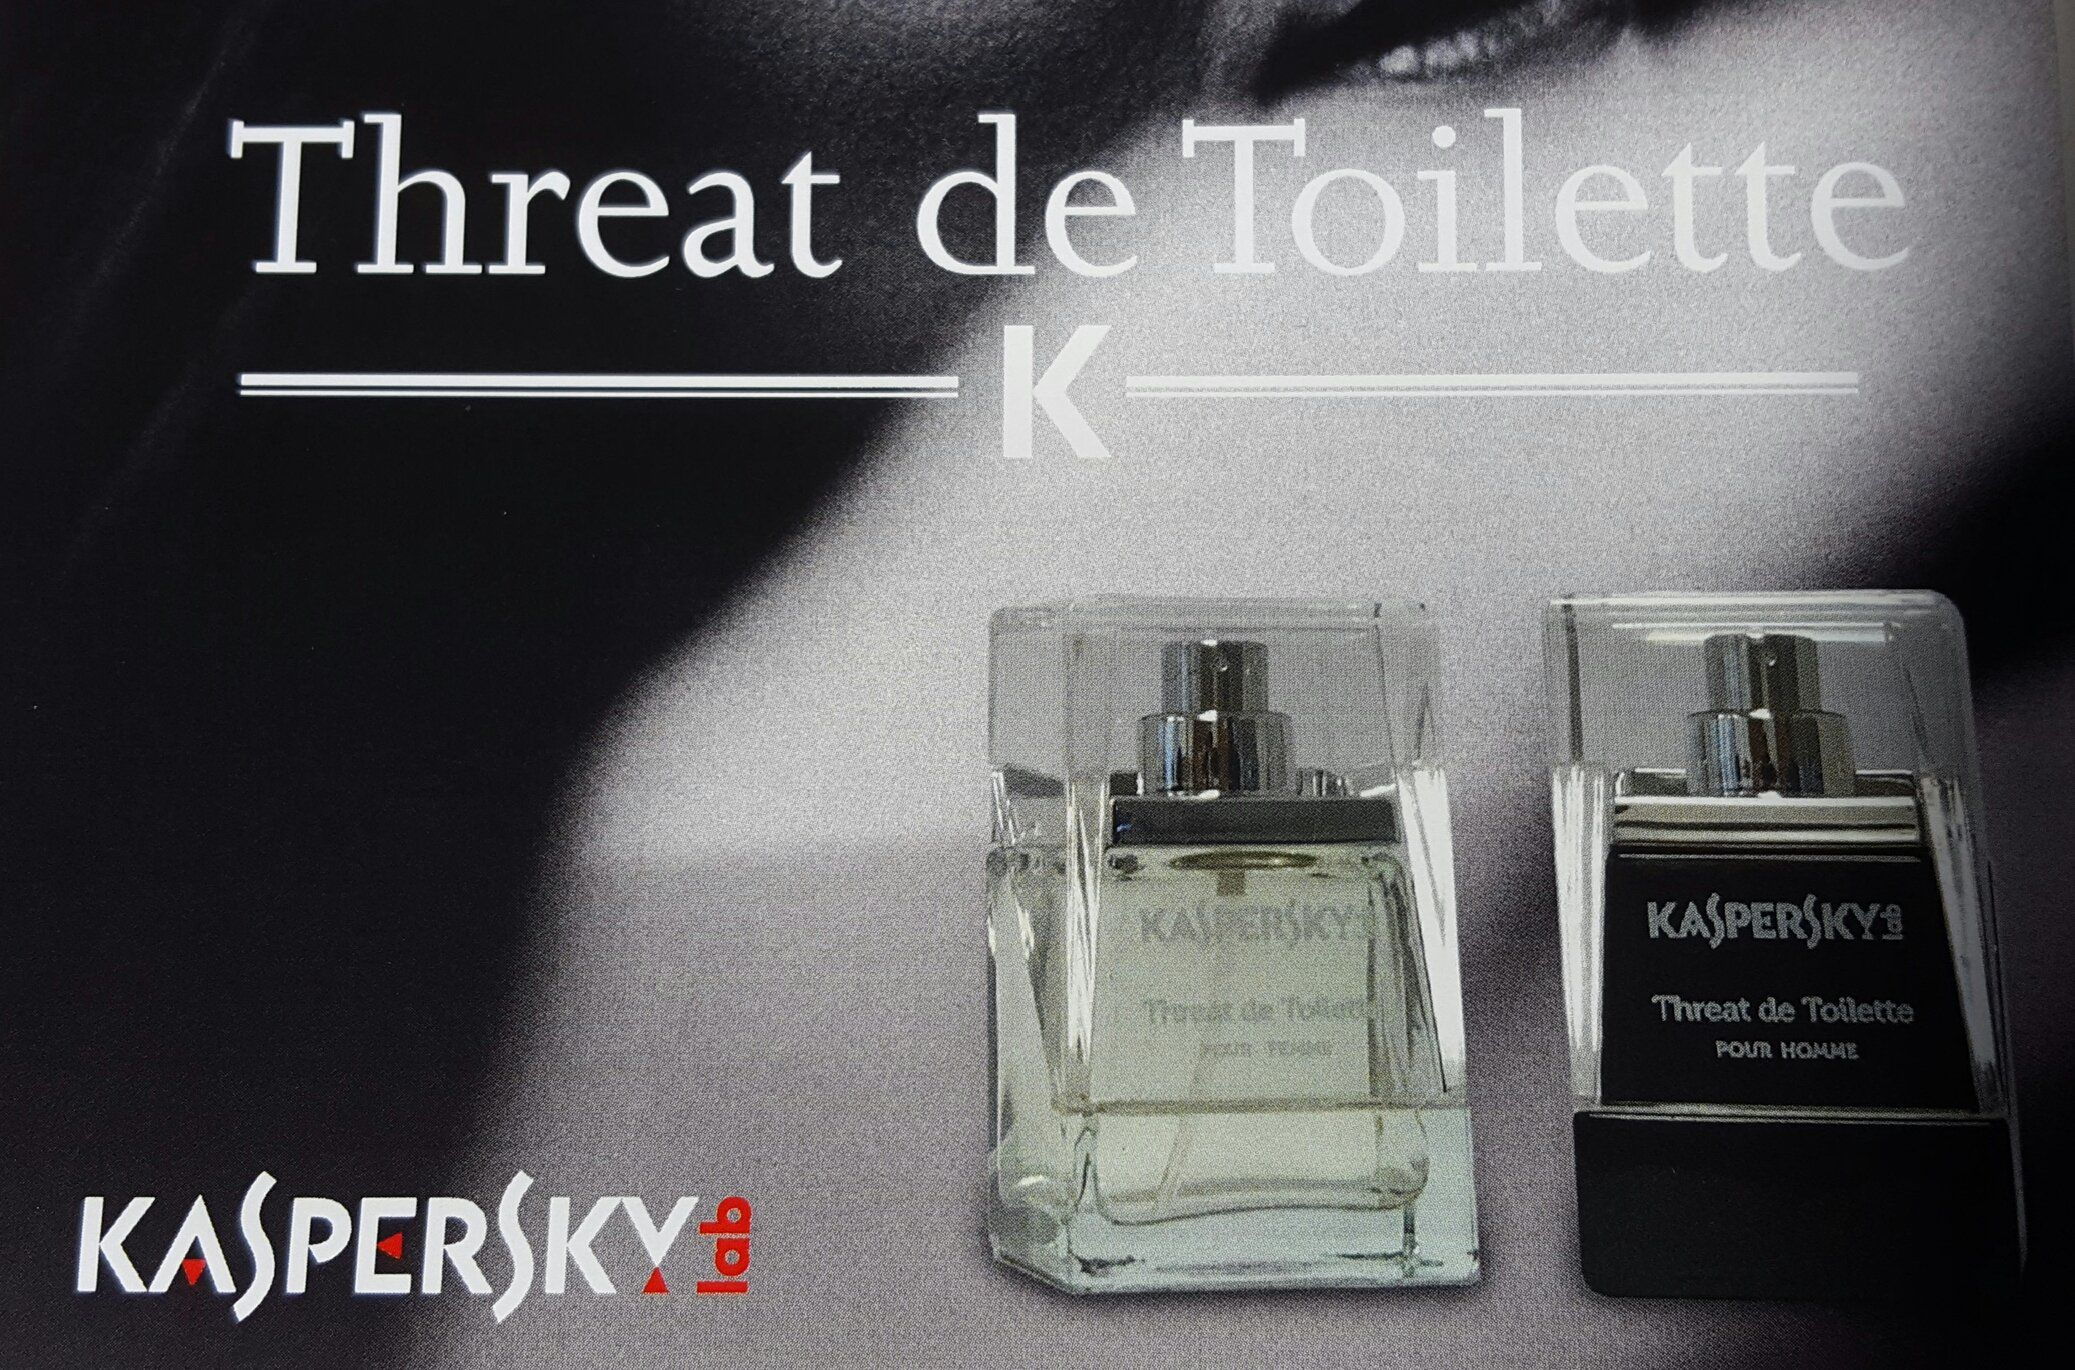 Toilette Gain De Place kaspersky launches a range of perfumes to, er, defend your